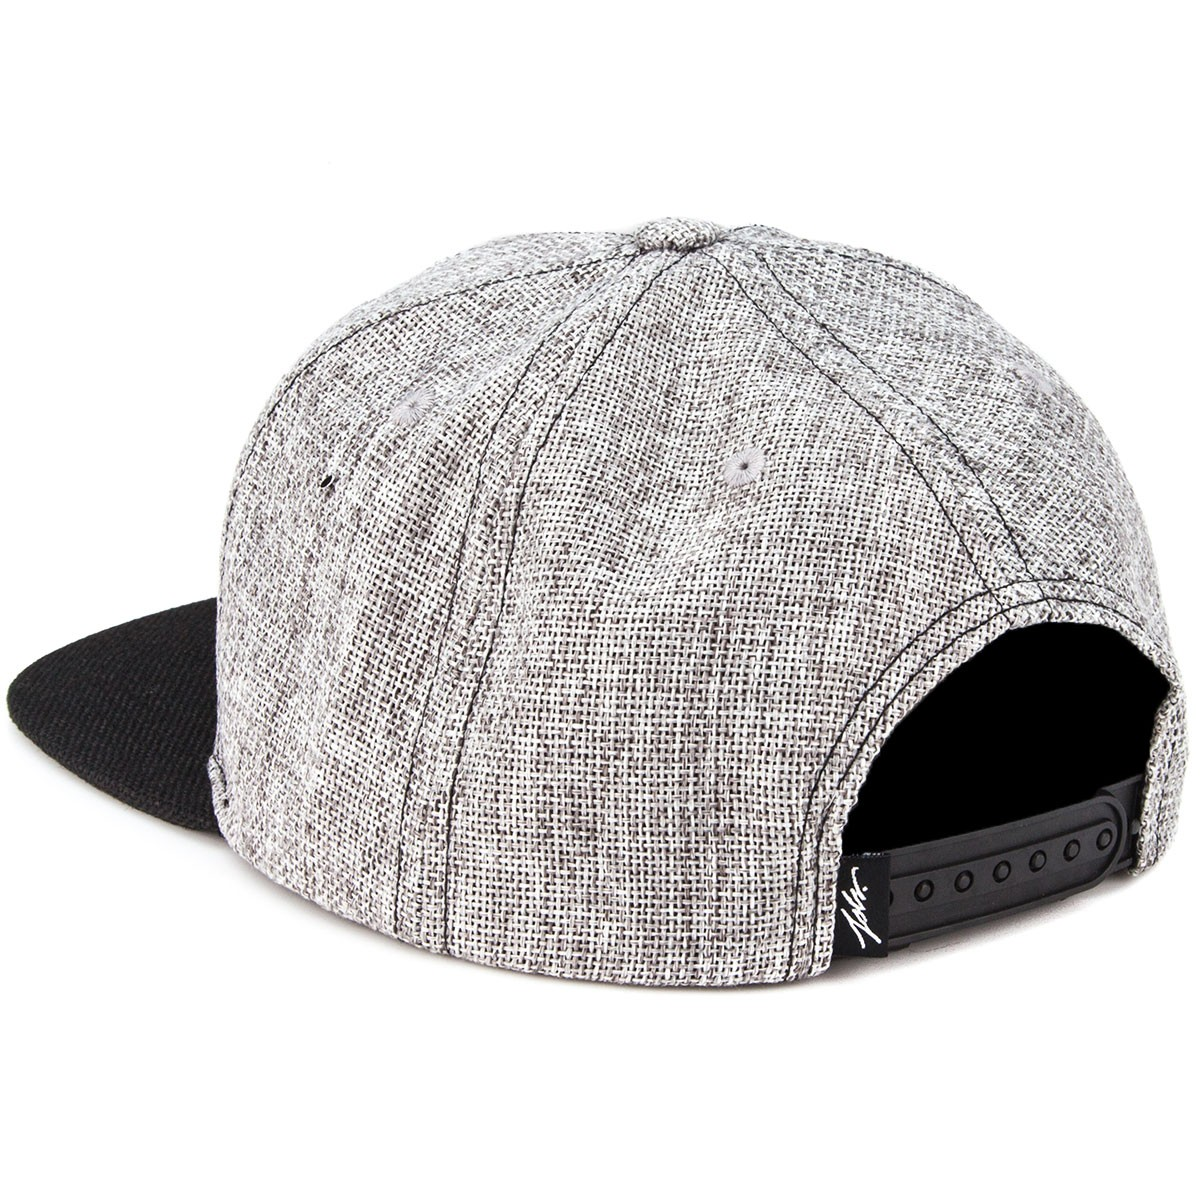 dffc8f5341e JSLV Highlife Hemp Snapback Hat - Charcoal Black